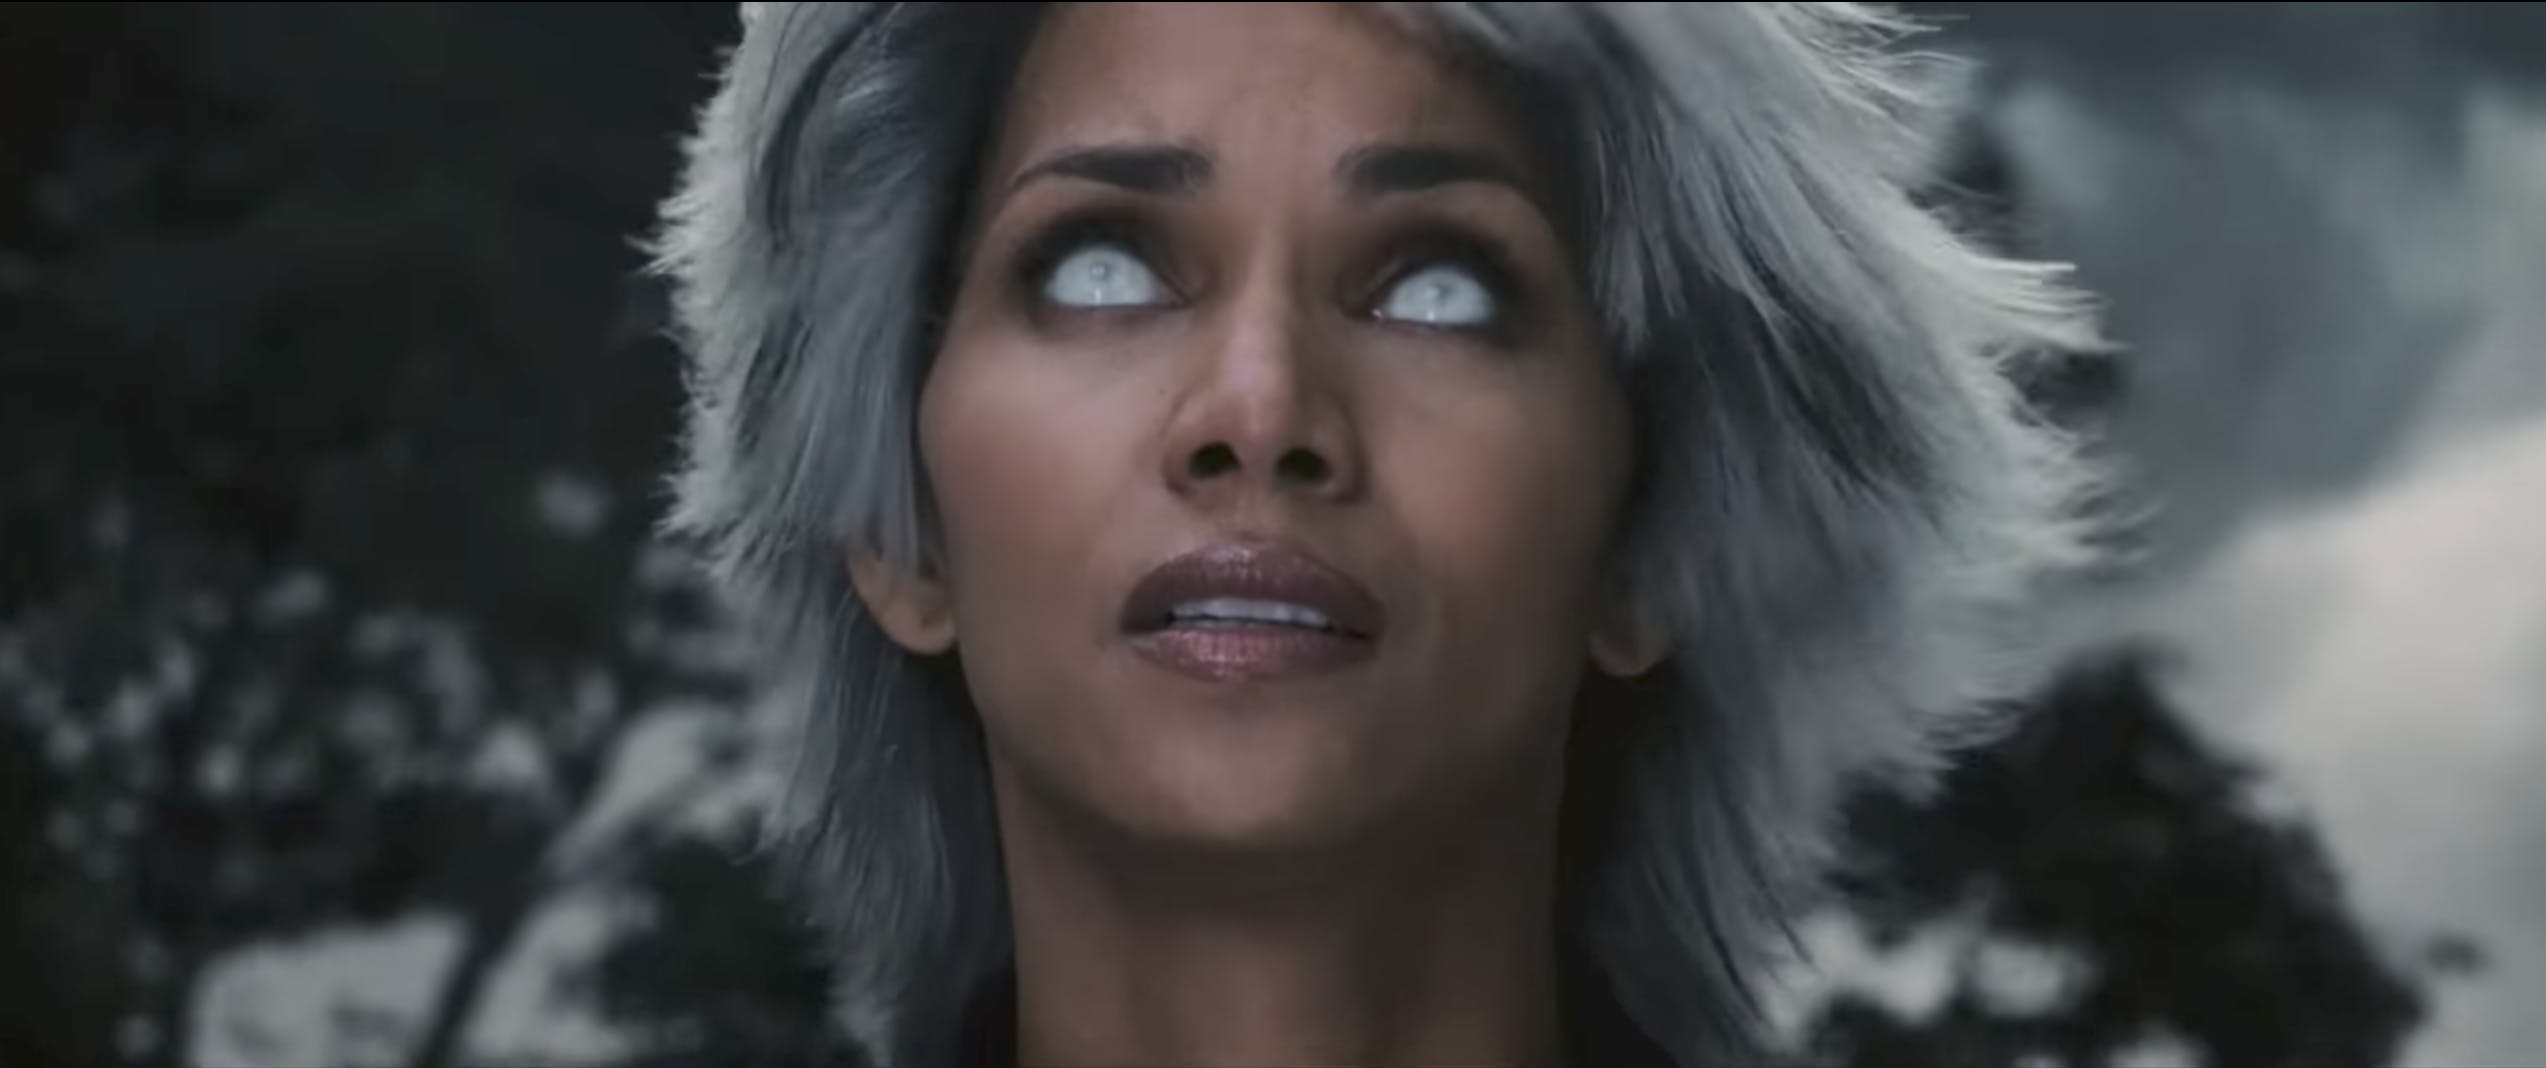 X Men Movies in Order : Storm in 'X-Men: The Last Stand.'